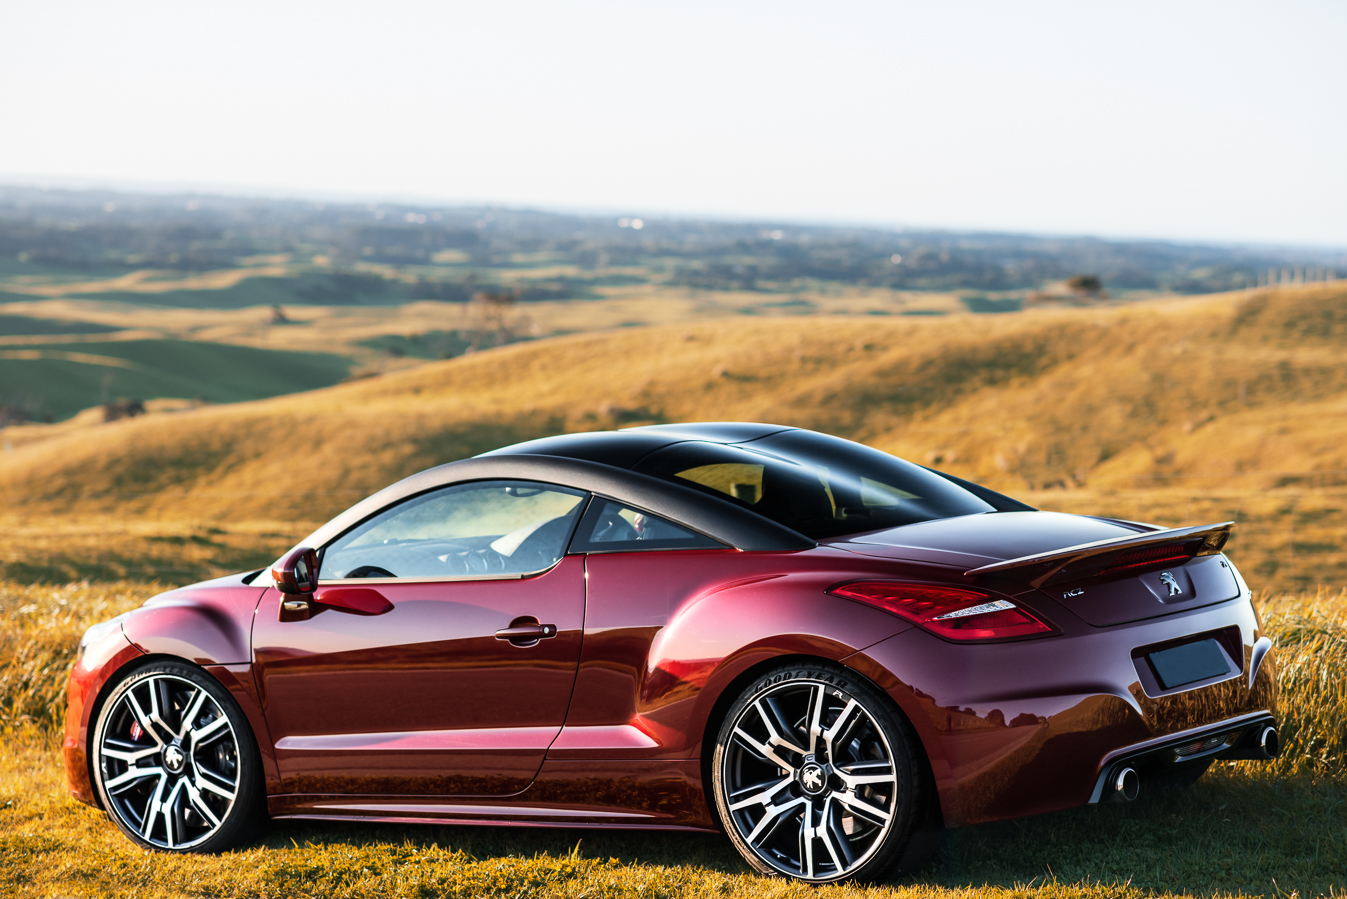 peugeot rcz forum rcz r coilovers and new alloys rcz tuning modifying forum. Black Bedroom Furniture Sets. Home Design Ideas